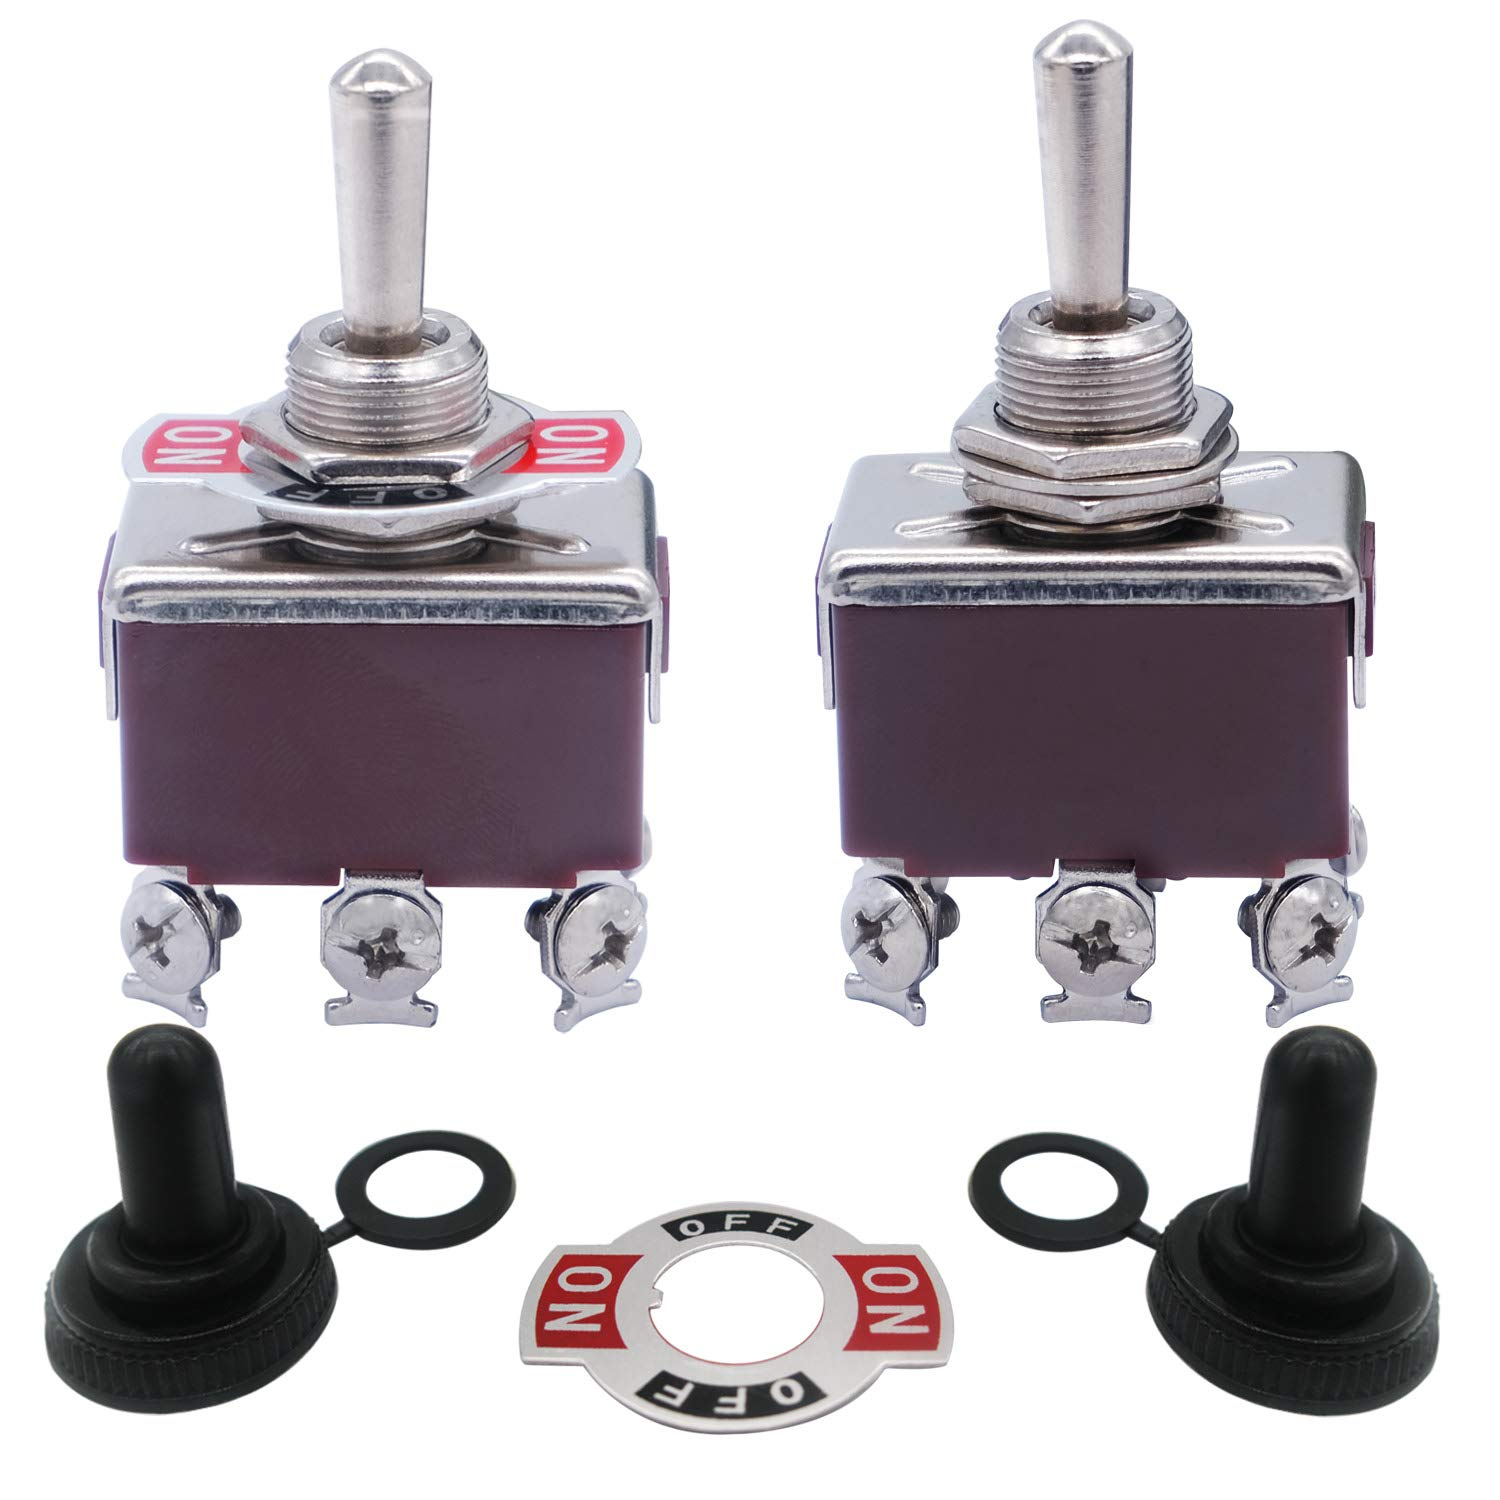 Taiss / 2pcs Momentary Switch Toggle Rocker Heavy Duty 20A 125V DPDT 3 Position 6 Terminal (ON)-Off-(ON) Toggle Switches + 2pcs Waterproof Cap ( 2 Years Warranty) ten-223